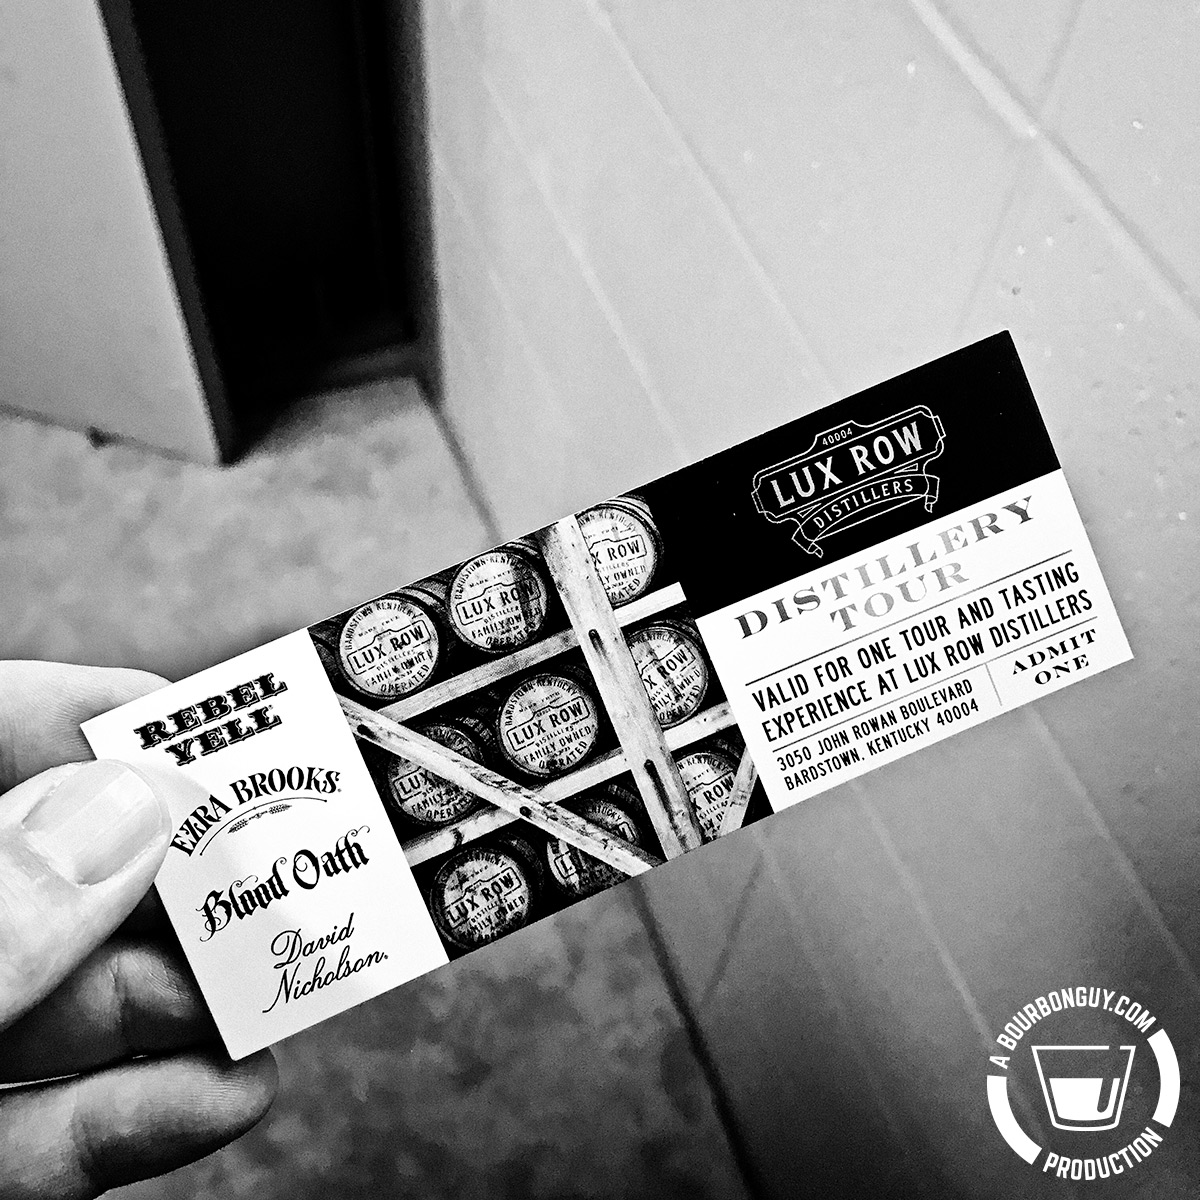 IMAGE: The Lux Row Distillery tour ticket